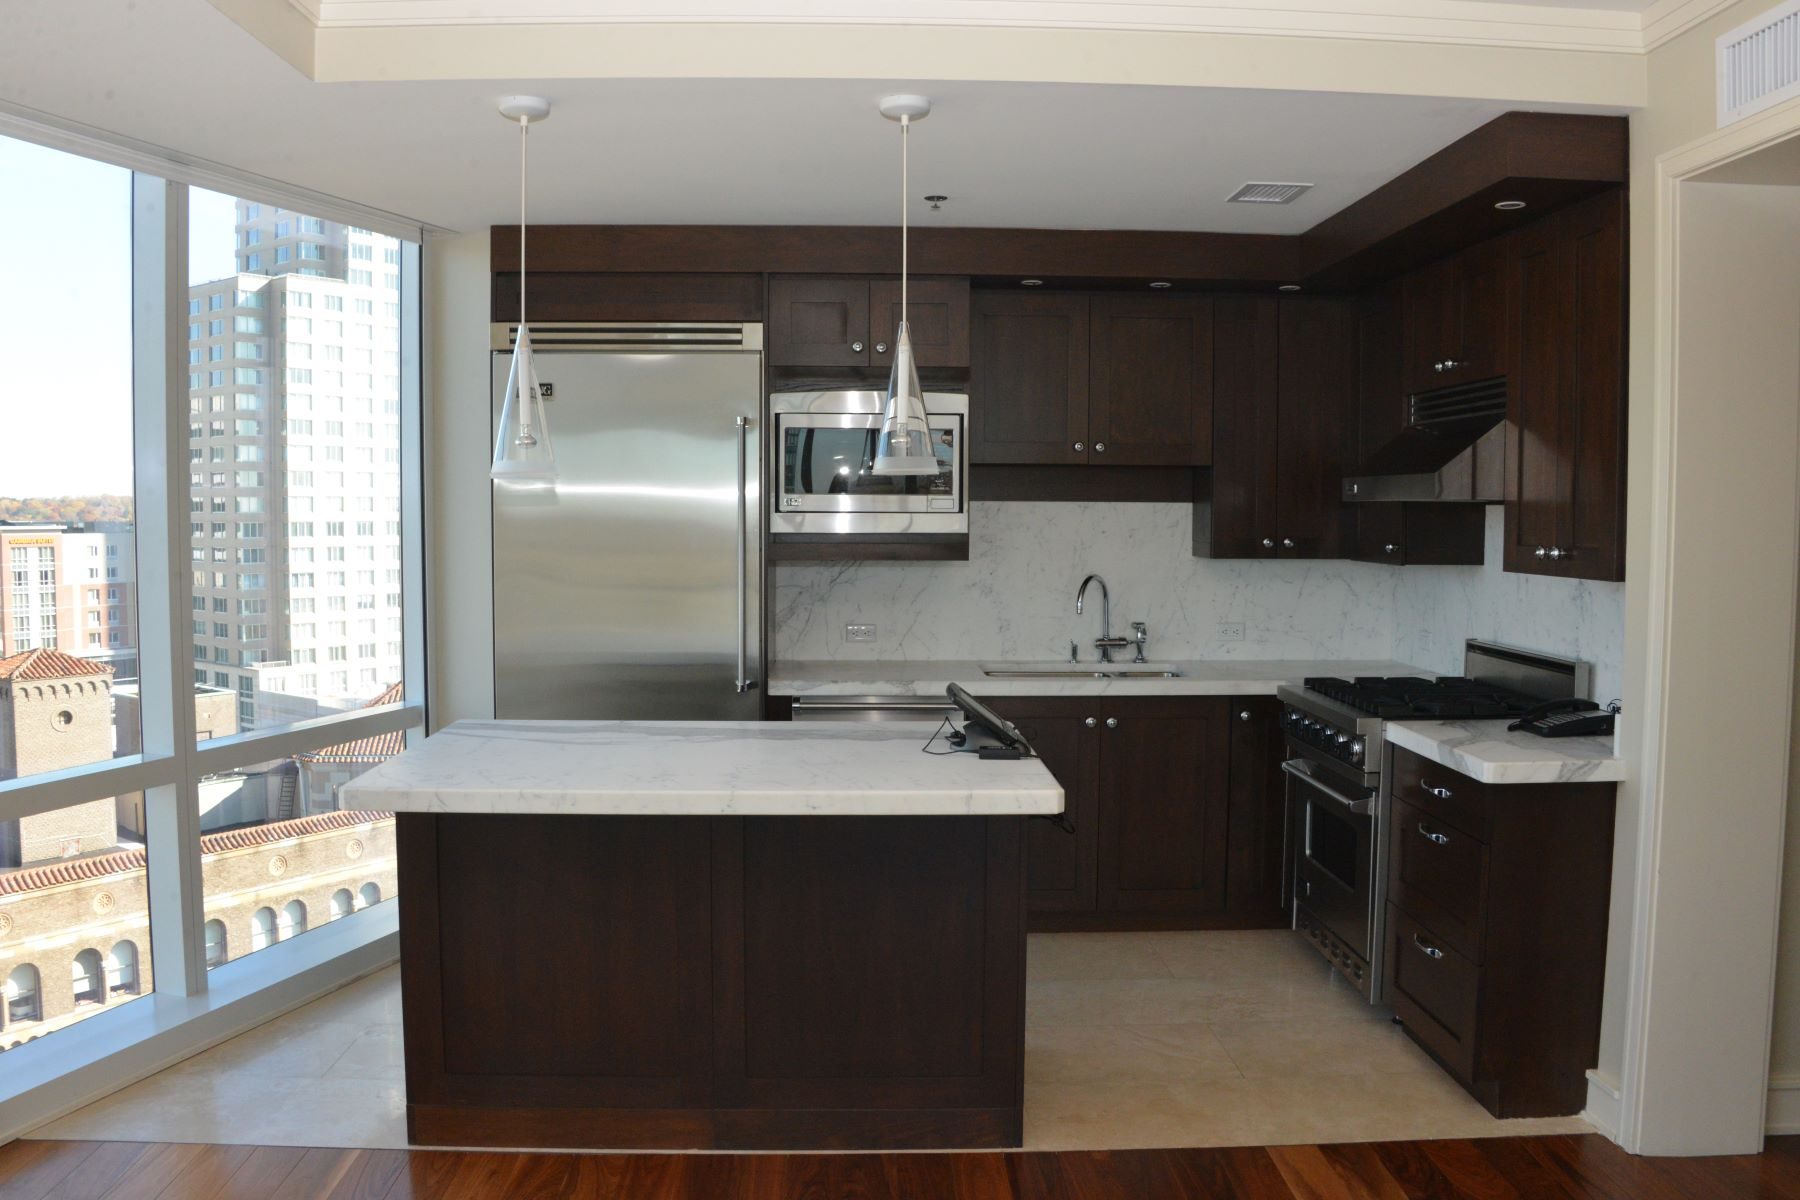 Кондоминиум для того Аренда на Spacious Condo in The Ritz- Carlton 1 Renaissance Square 15G White Plains, Нью-Йорк 10601 Соединенные Штаты